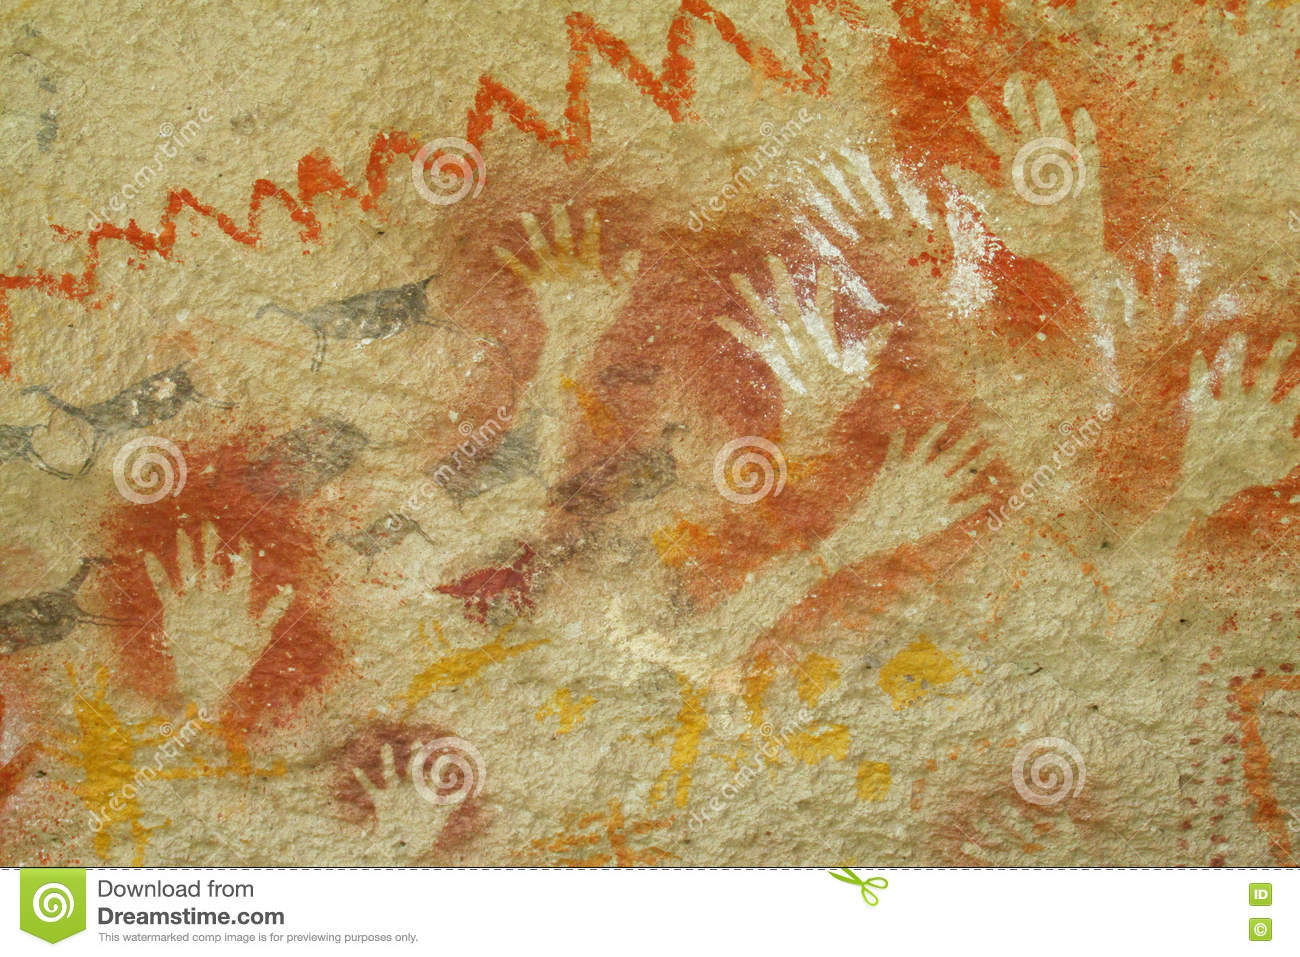 Hand prints on a cave wall stock photo. Image of caveman - 78110044